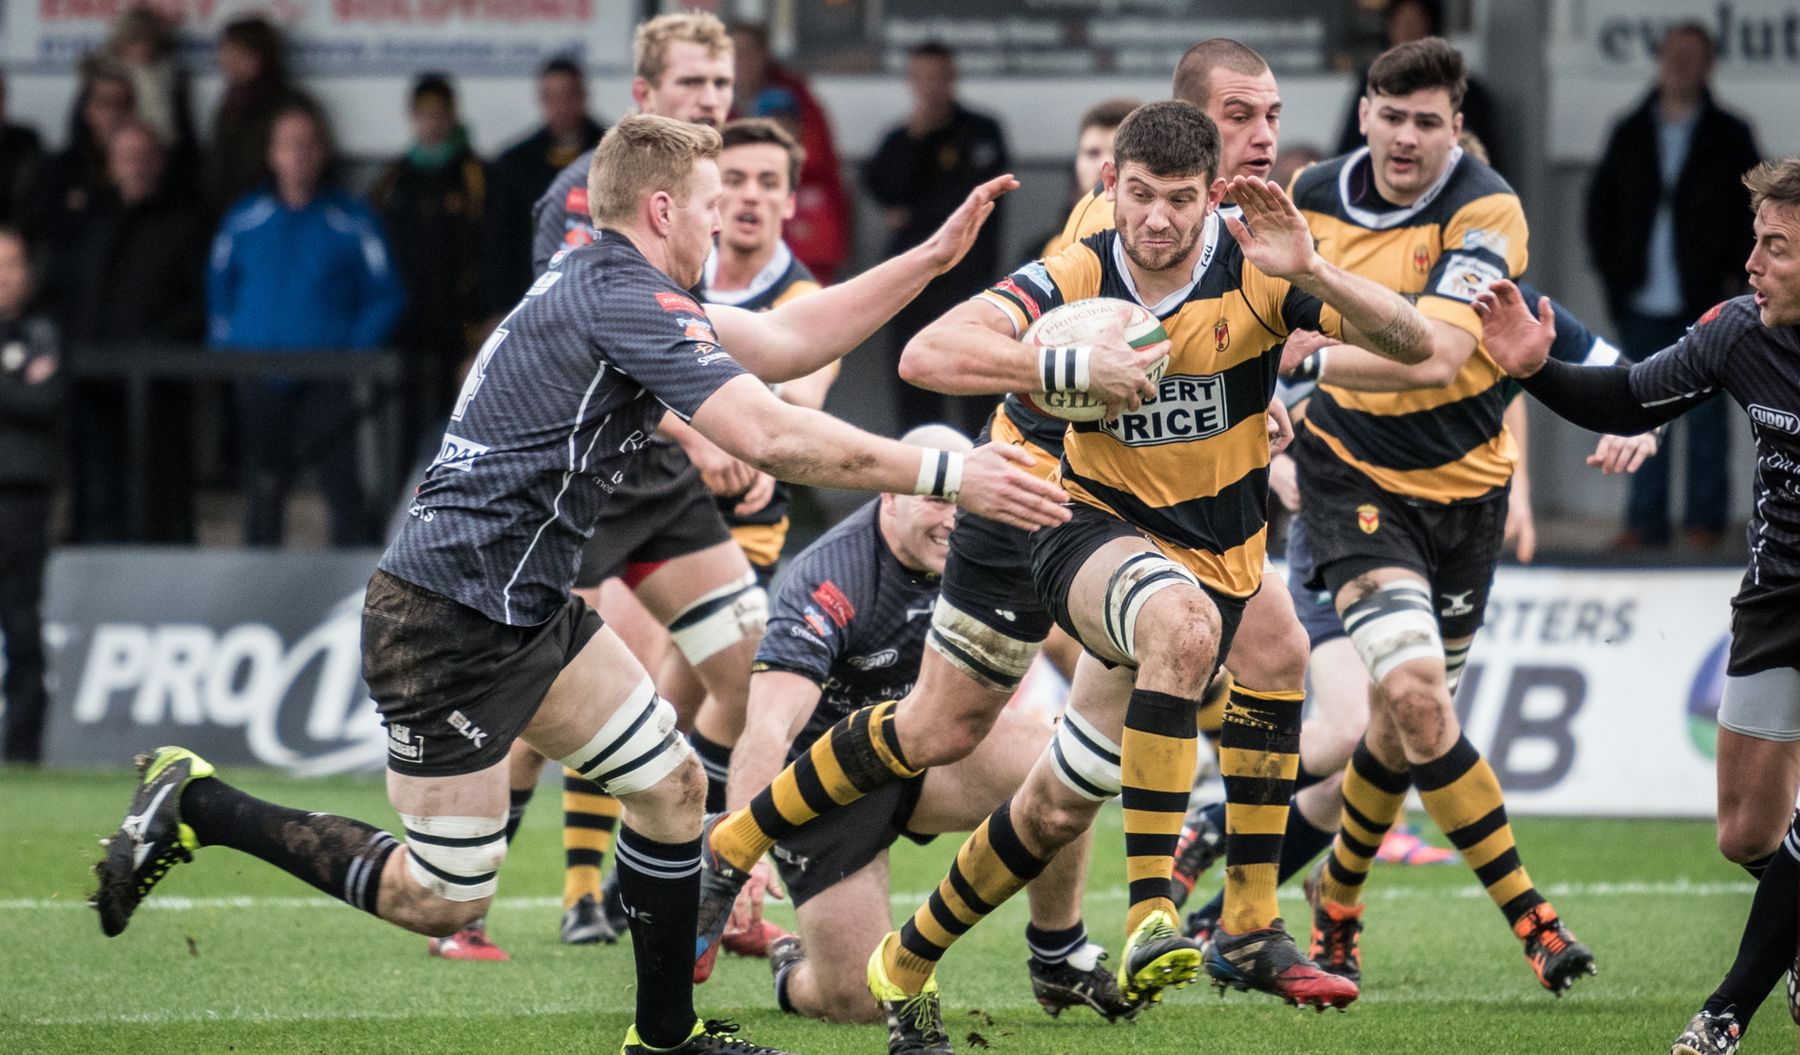 Newport have spring in their step